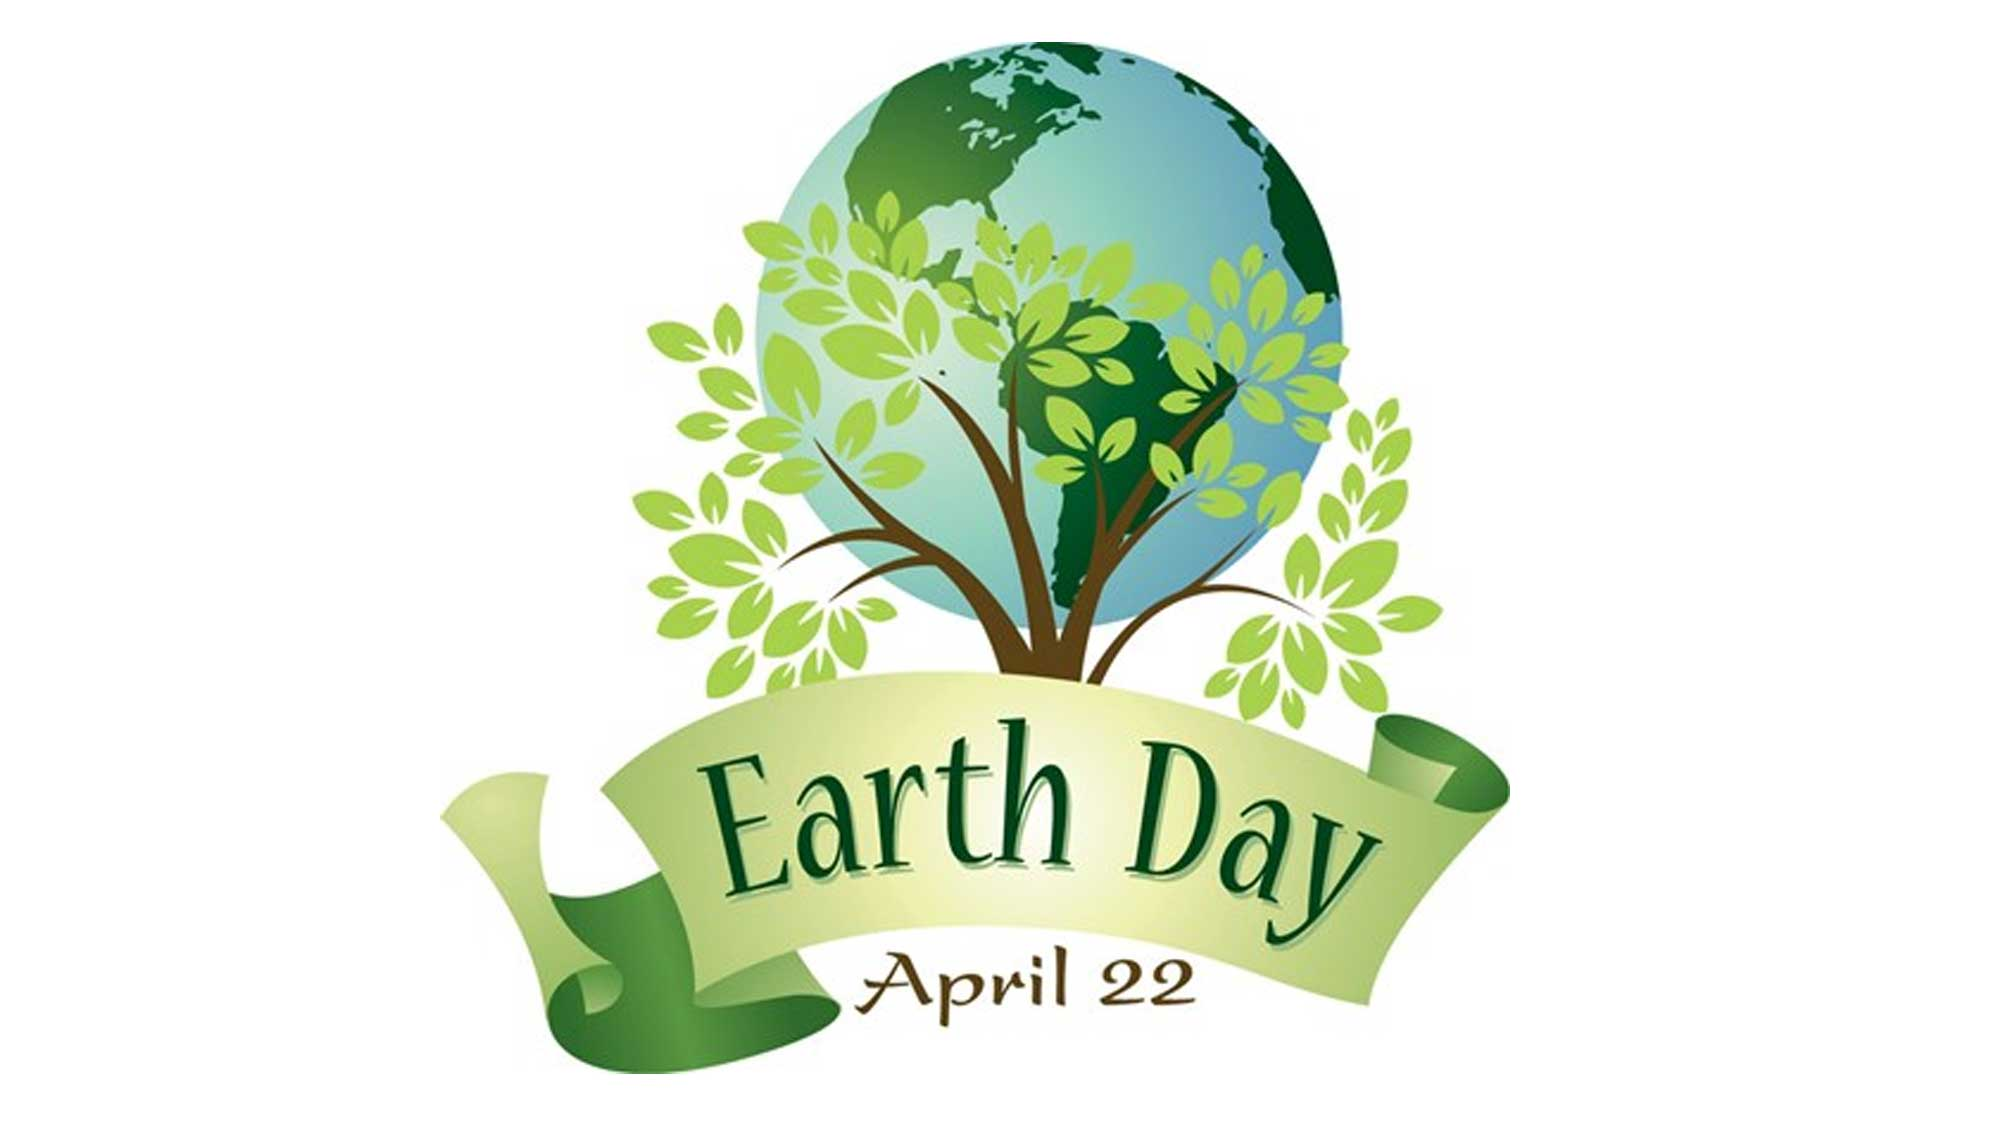 earth day 2013 essay Guidelines for 2014 earth day essay contest for mariposa students.